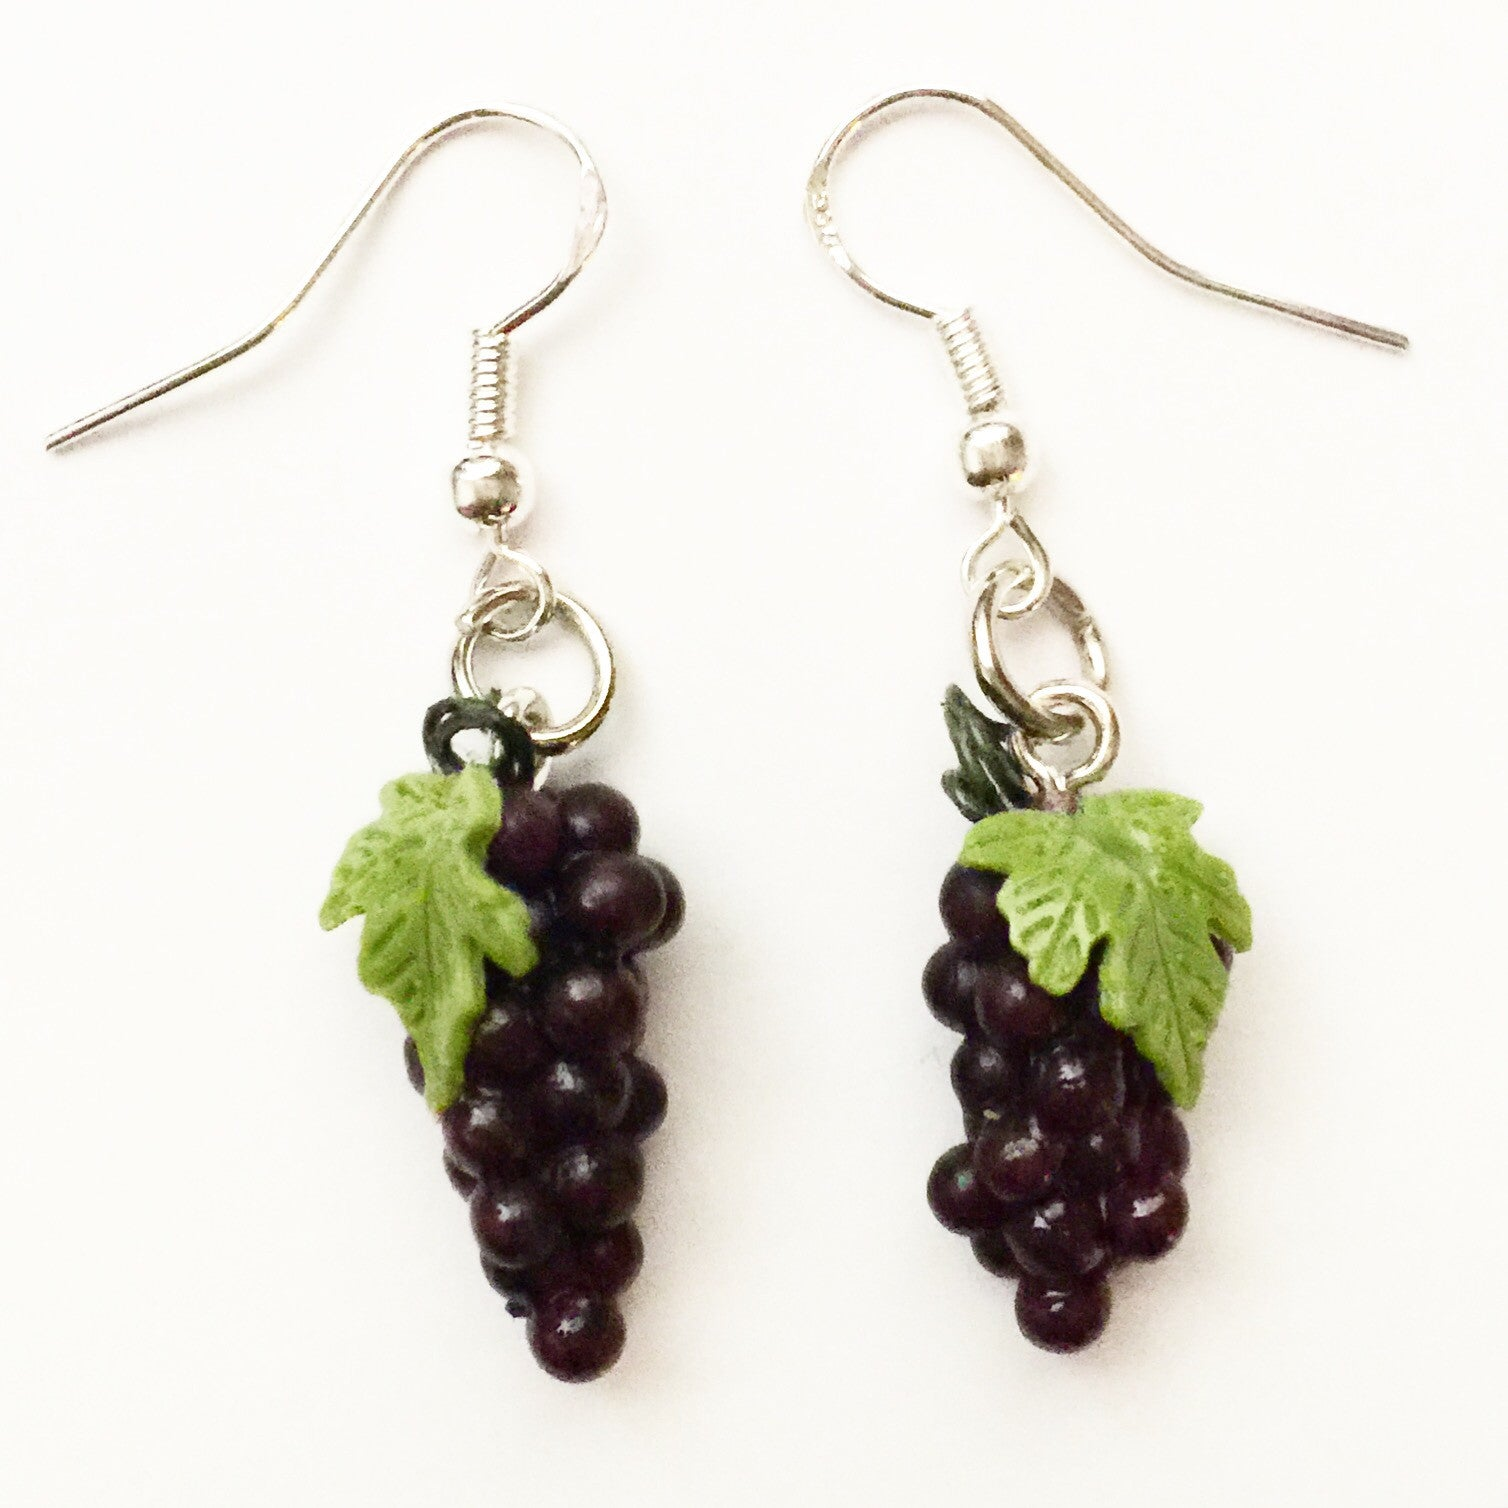 grapes earrings - Jillicious charms and accessories - 4